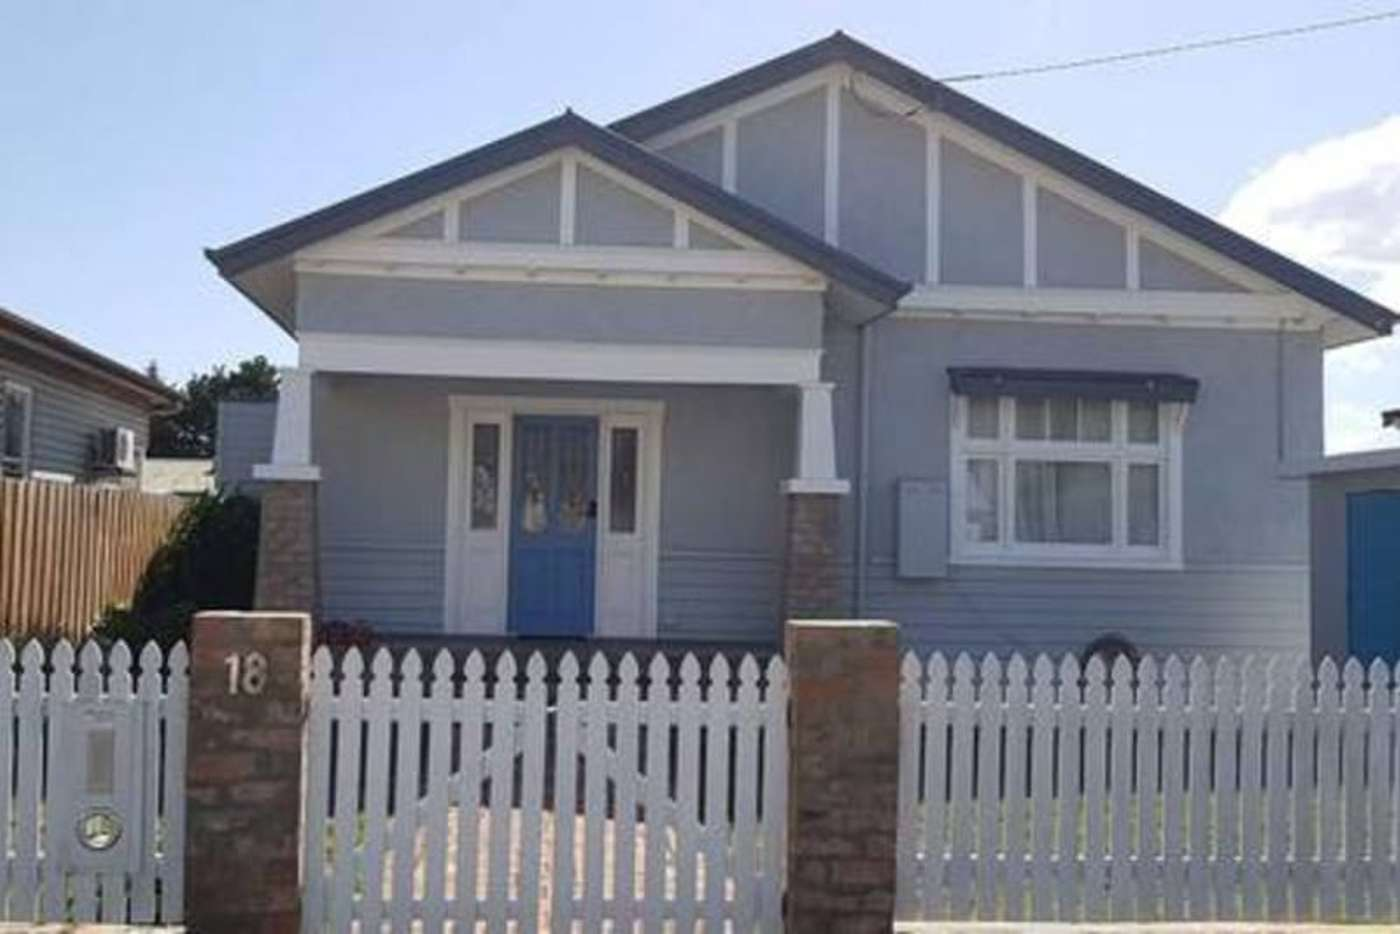 Main view of Homely house listing, 18 Hunter Street, Invermay TAS 7248